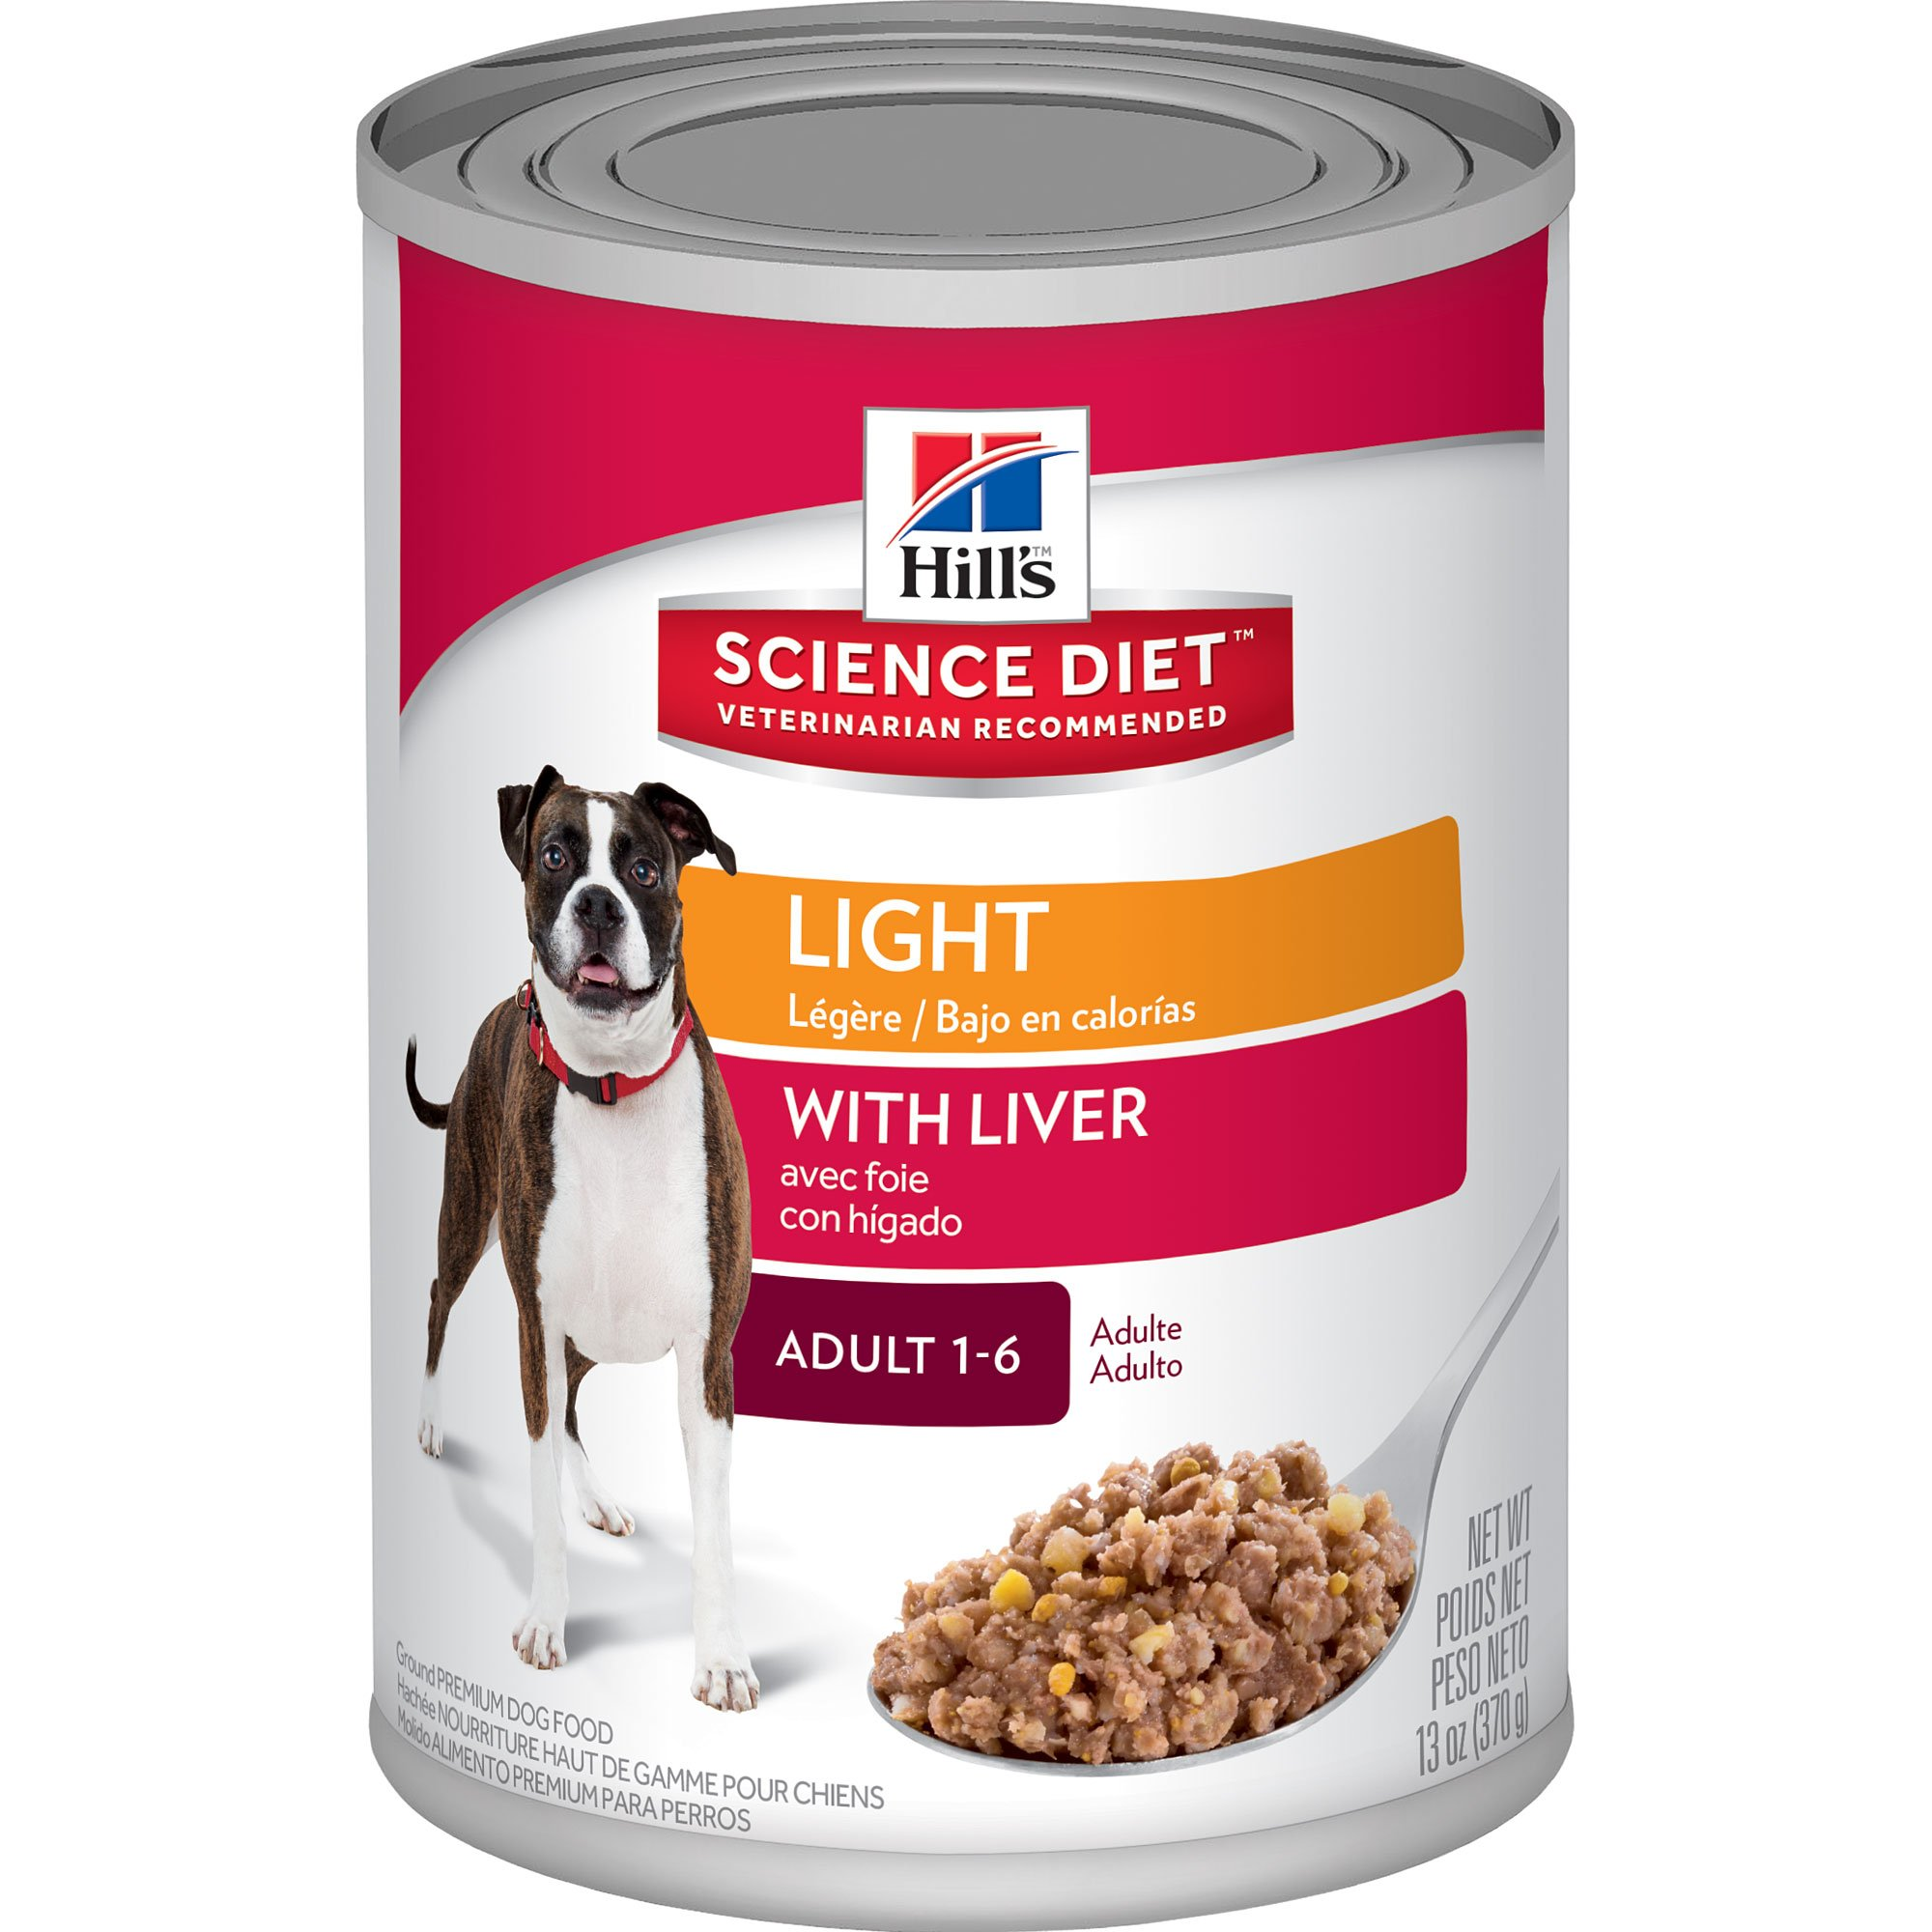 Hills Science Diet Adult Light Savory Liver Entree Canned Dog Food